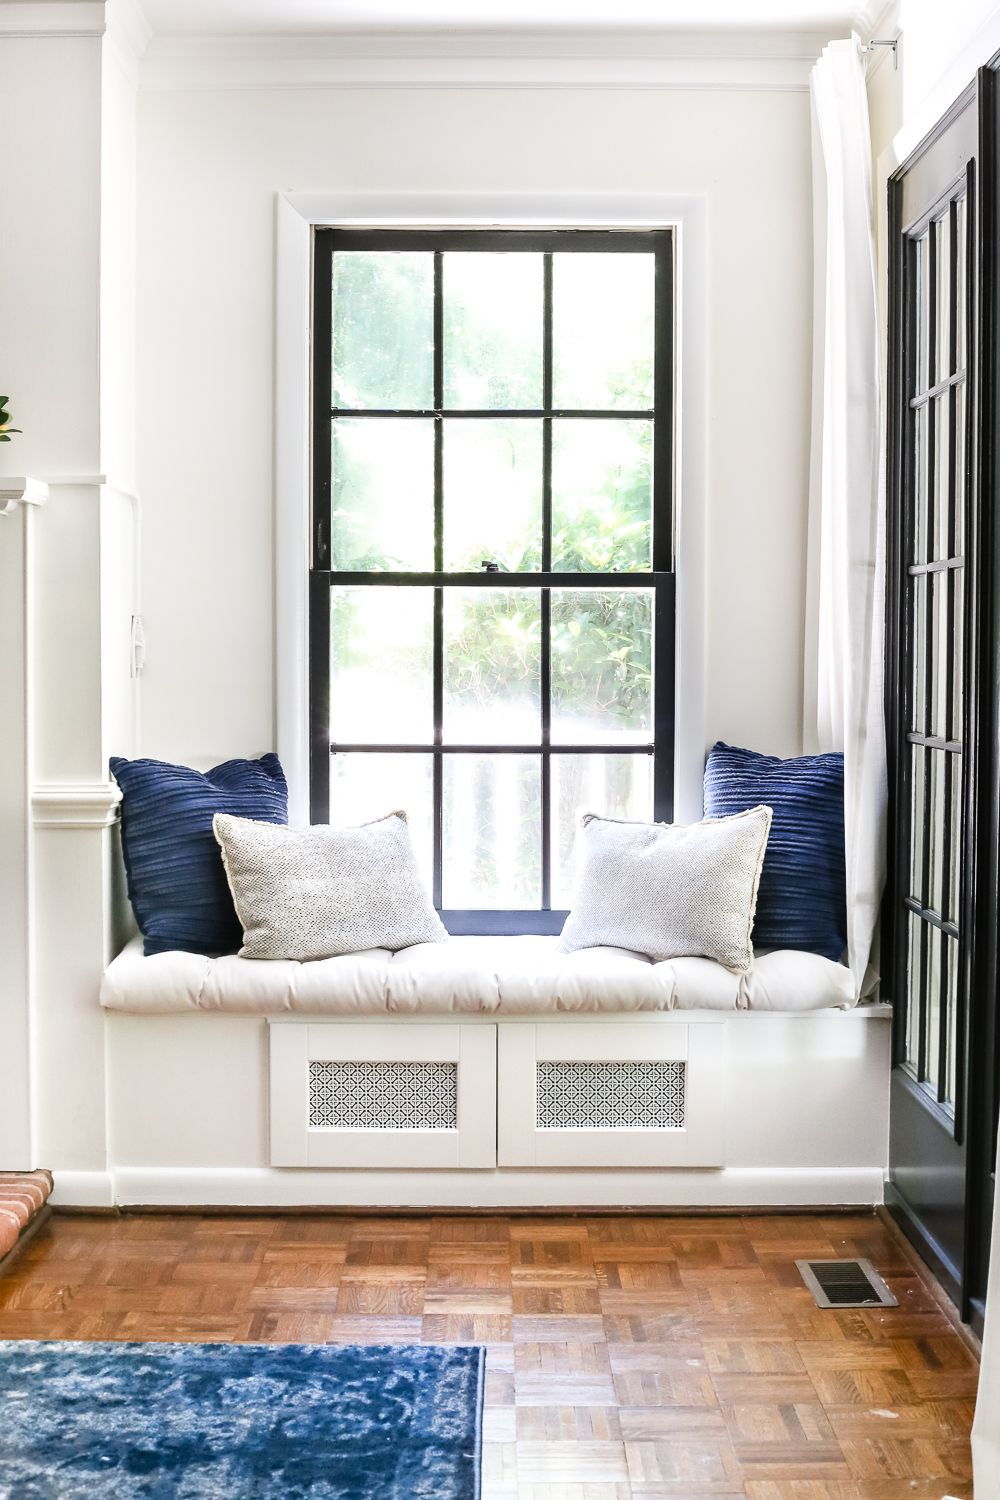 Rustic kitchen window decor  diy window seat from a kitchen cabinet  window kitchens and house